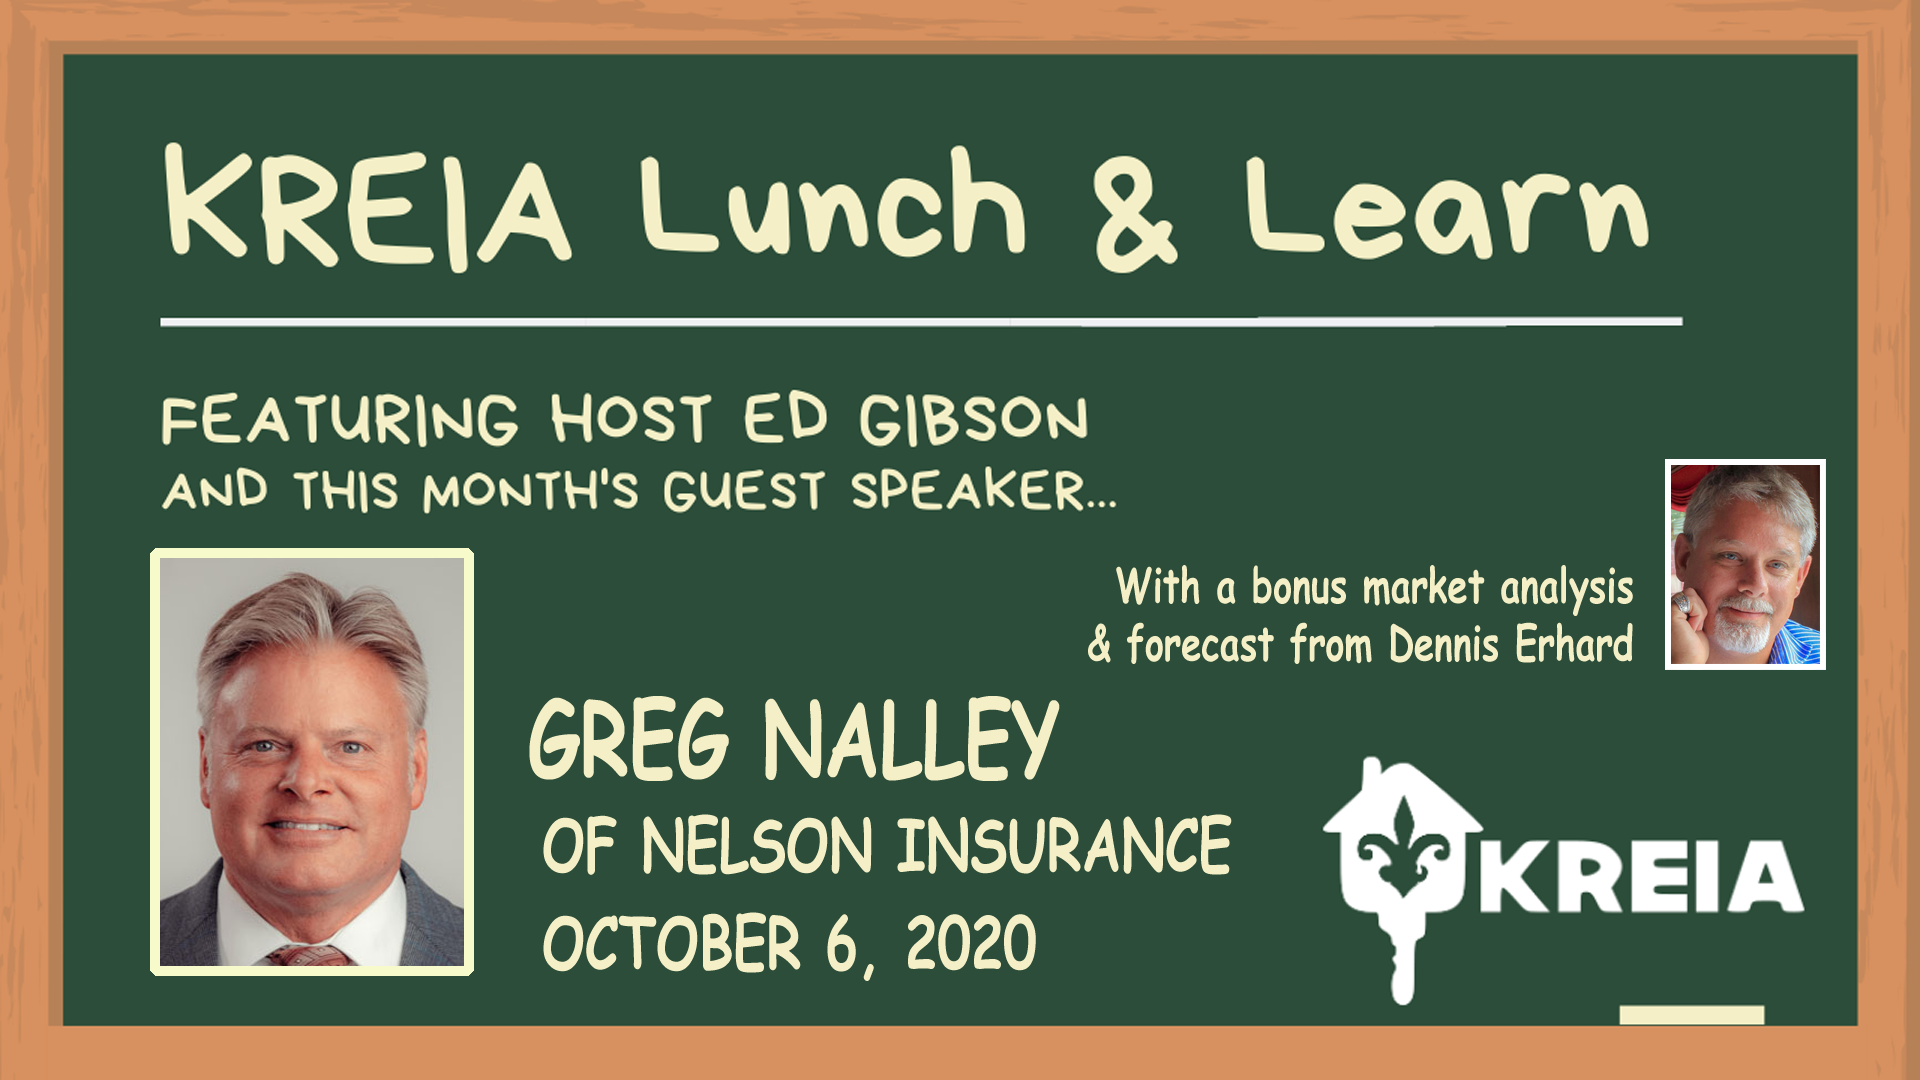 Lunch and Learn with Greg Nalley